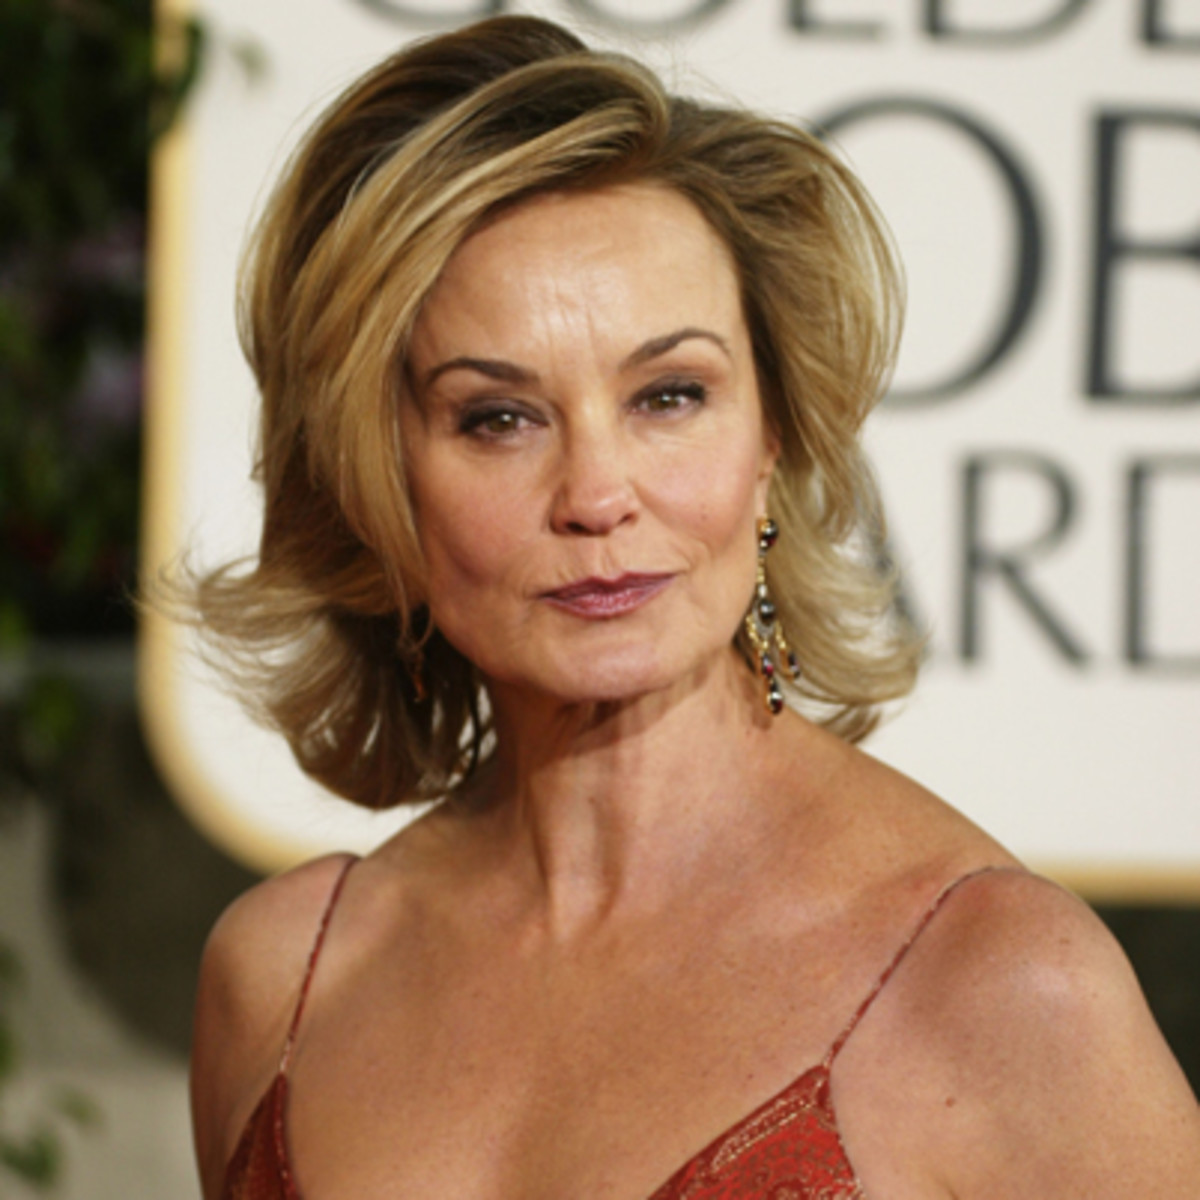 American Tv Actresses Nude jessica lange - movies, tv shows & age - biography